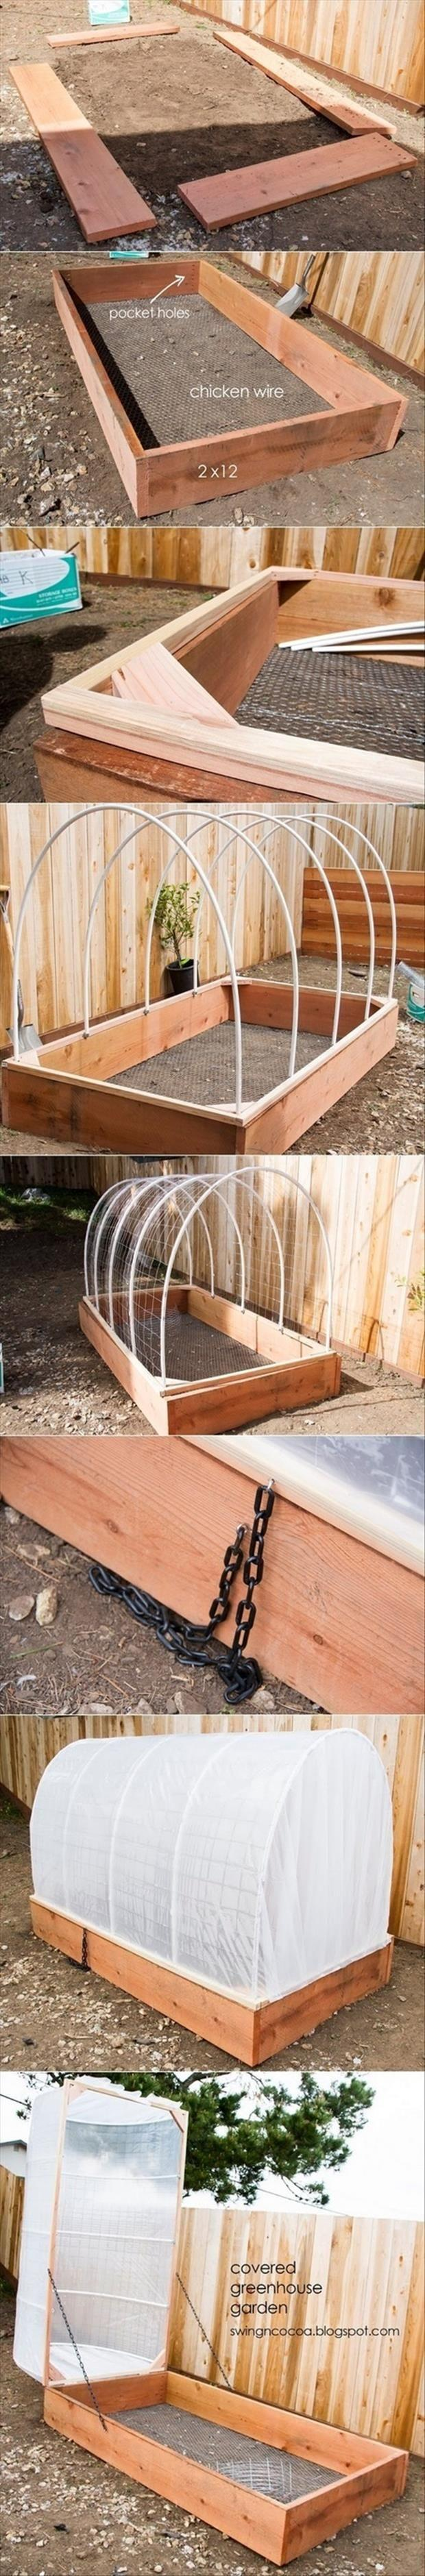 DIY Covered Greenhouse Garden A Removable Cover Solution